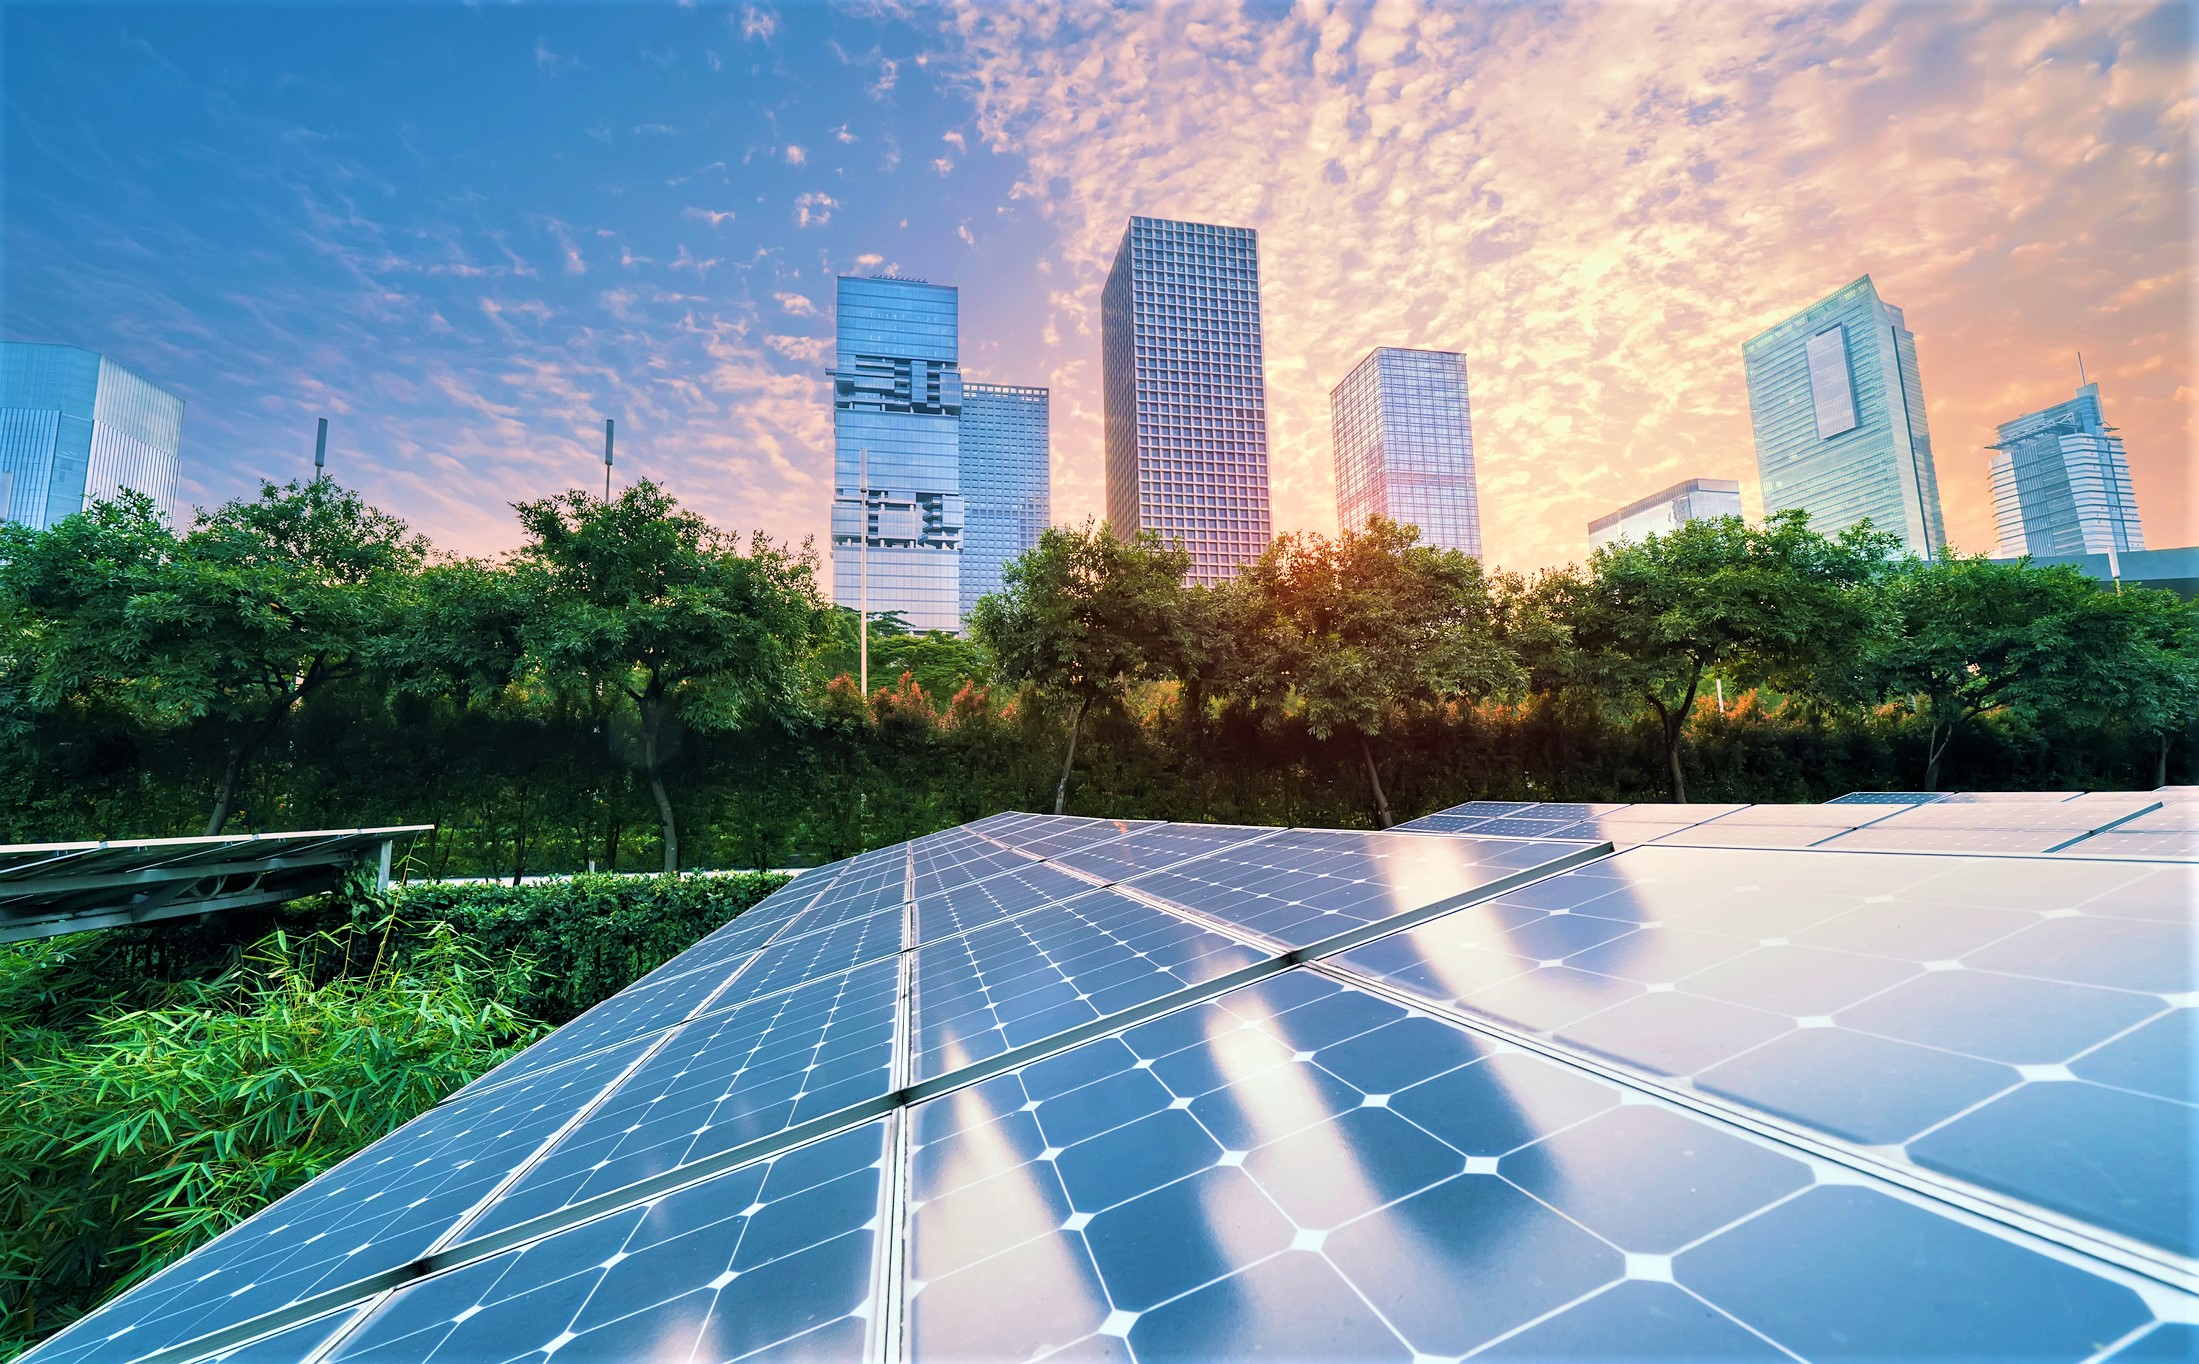 solar panels with a cityscape and trees in the background